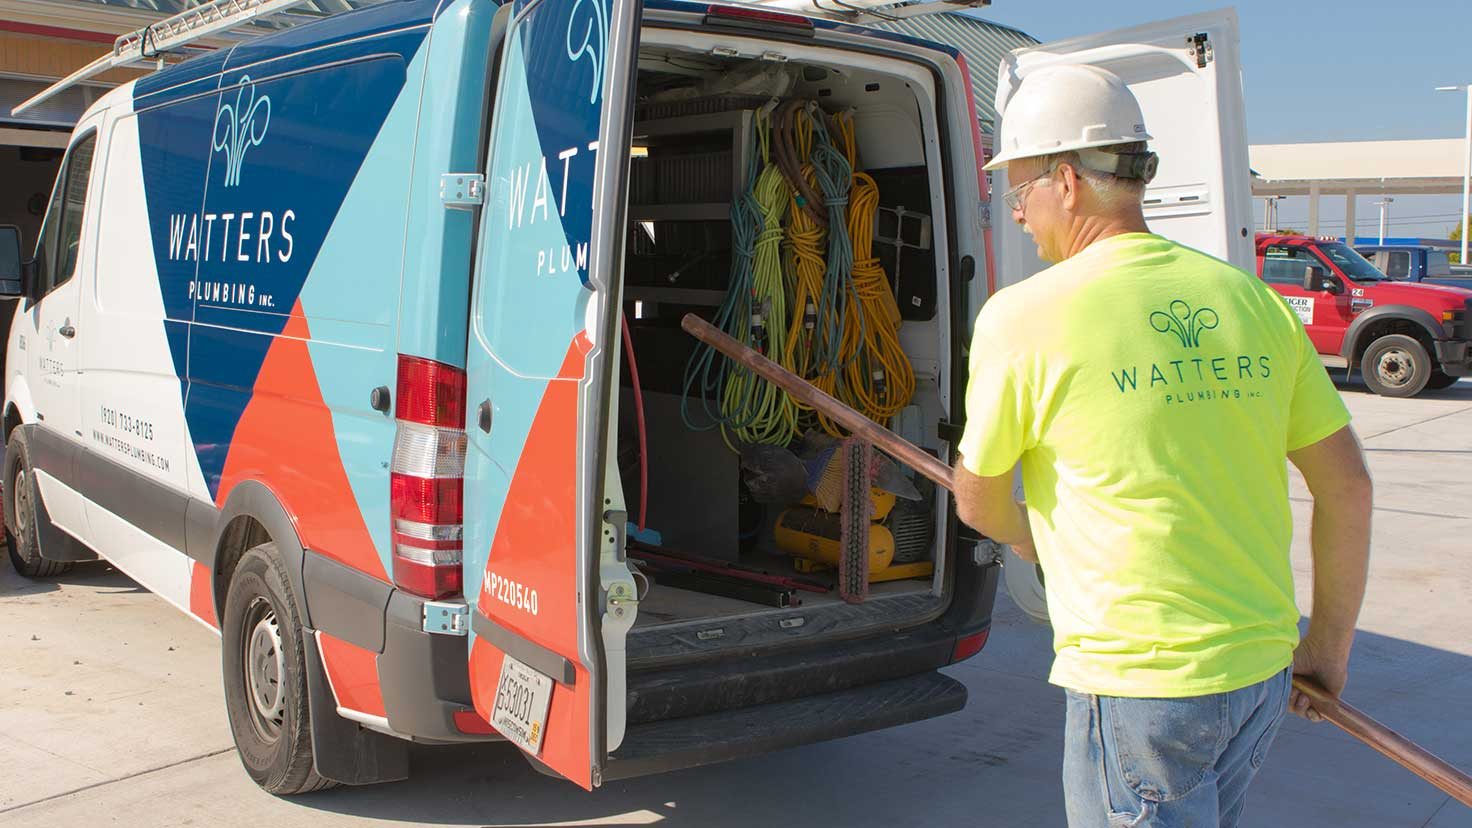 commercial plumbing services throughout Appleton, Green Bay and the Fox Valley